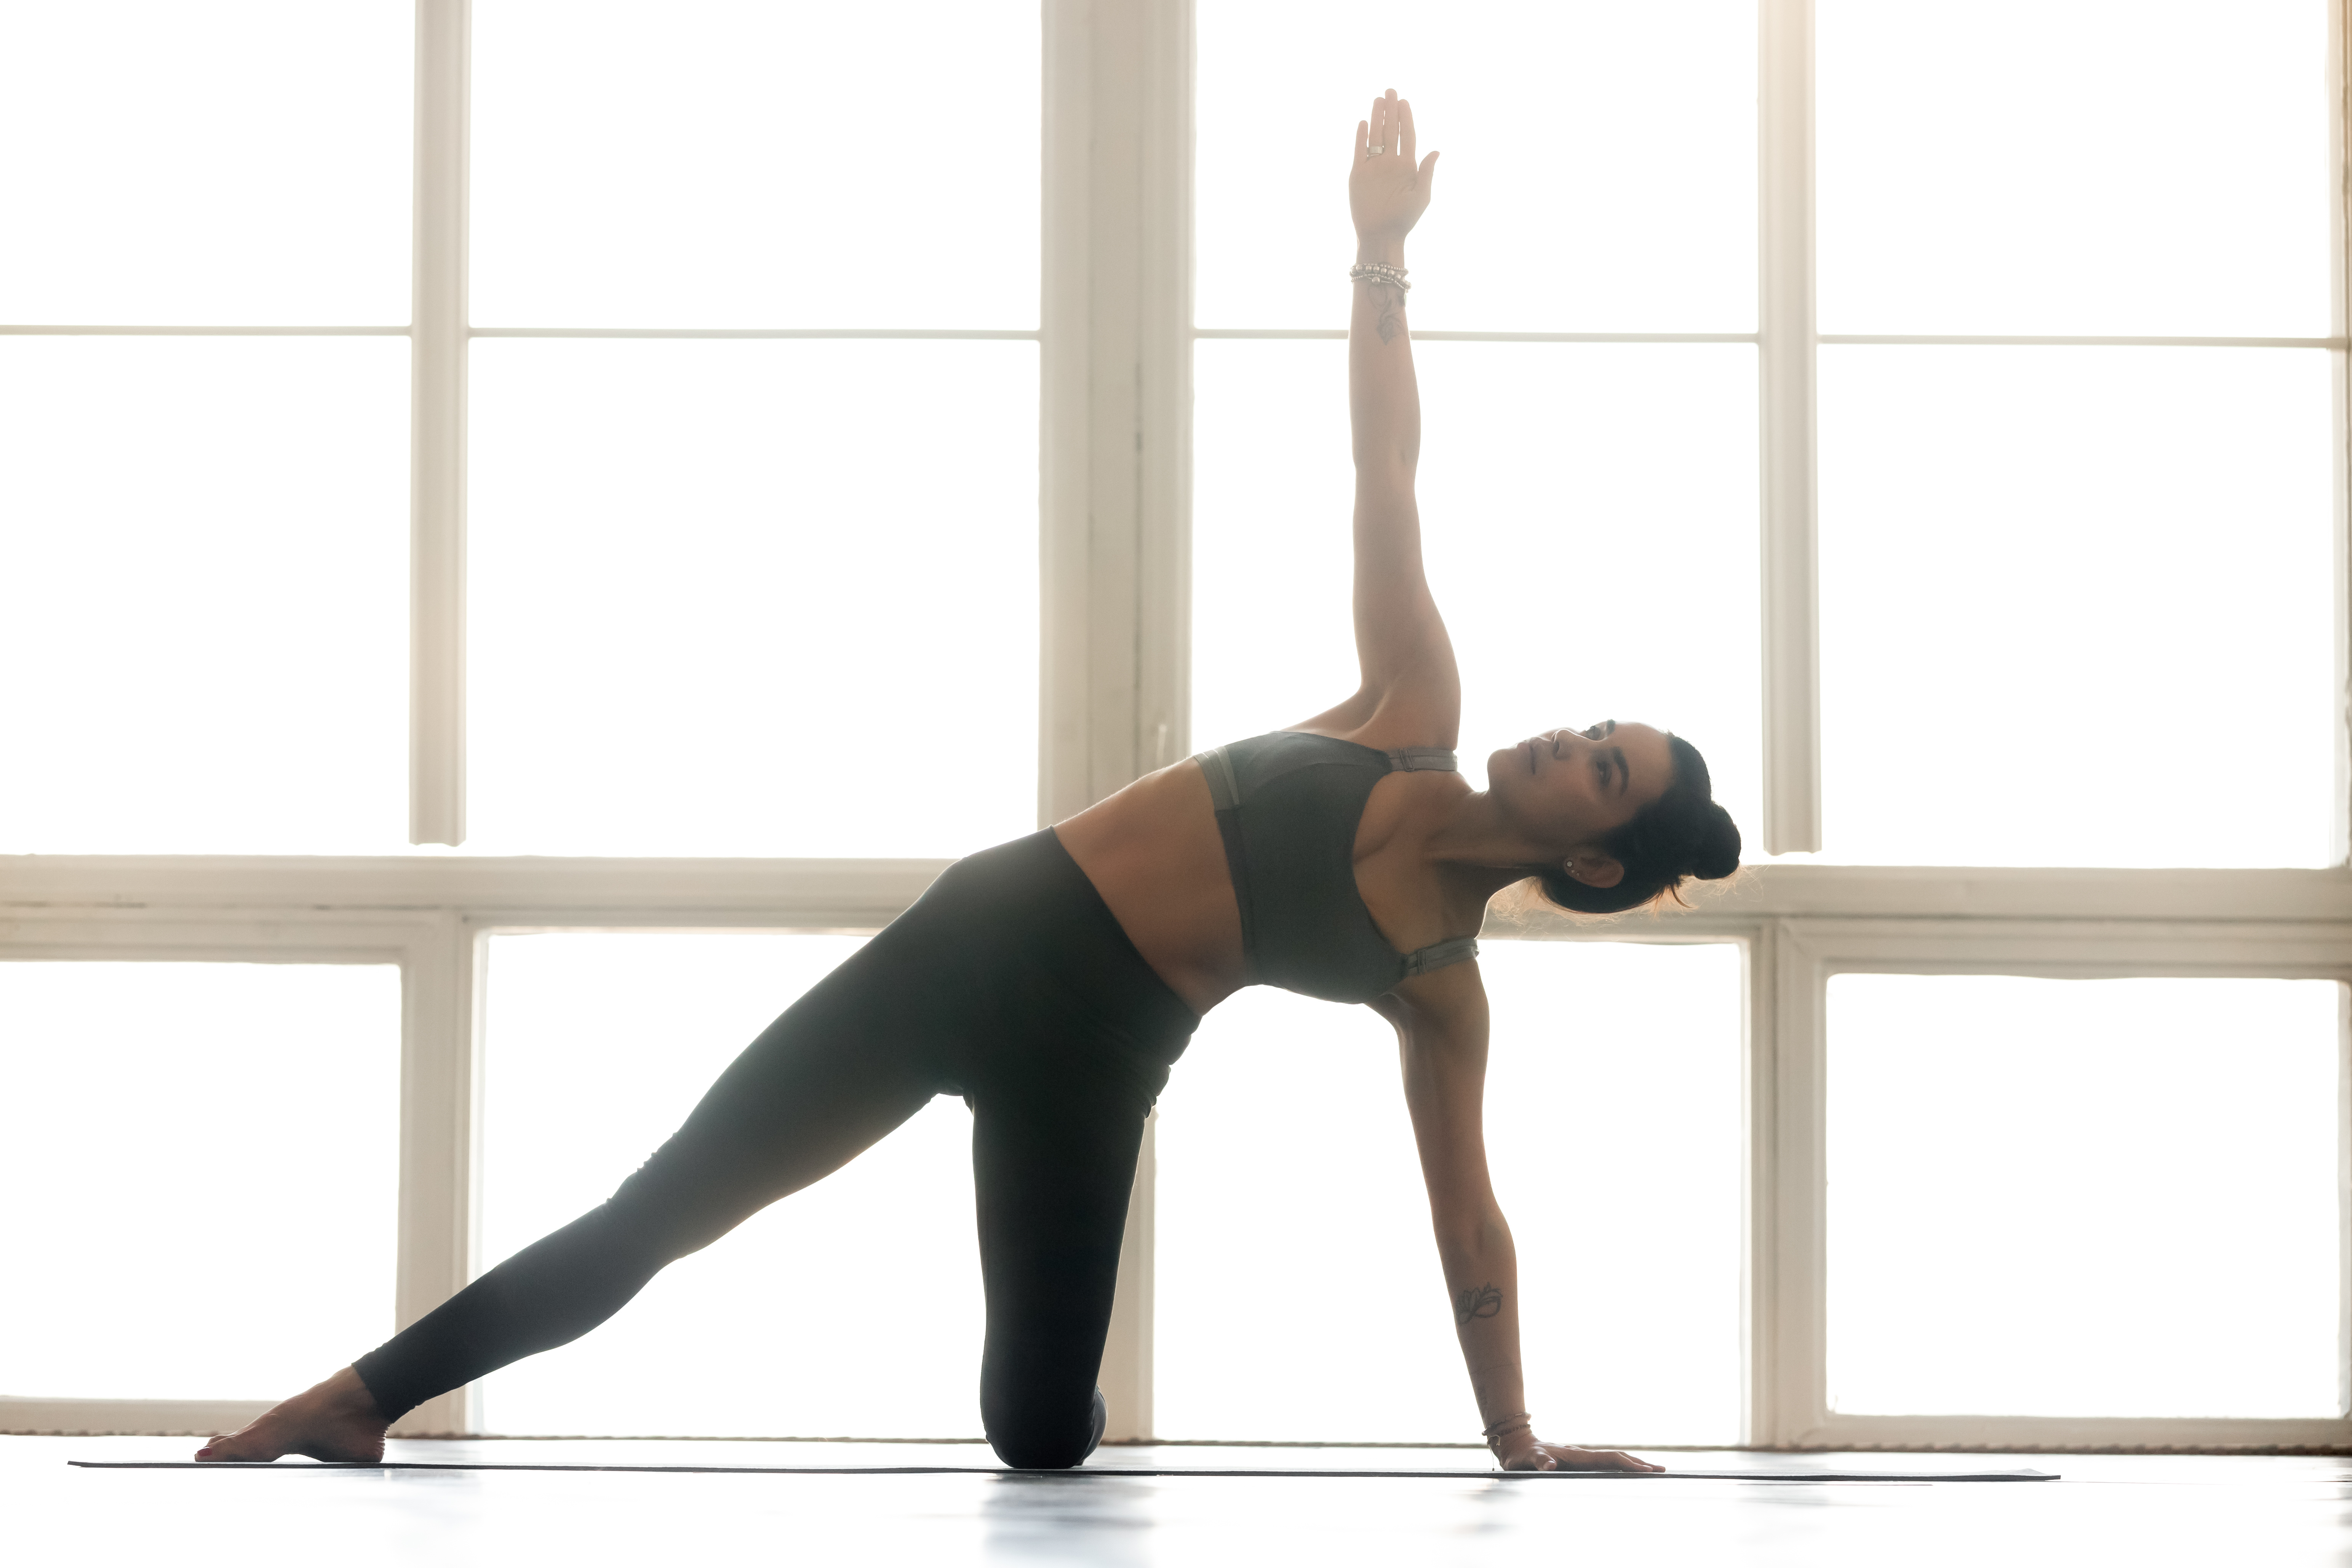 Reverse Parighasana, Star gazer pose, backbending pose